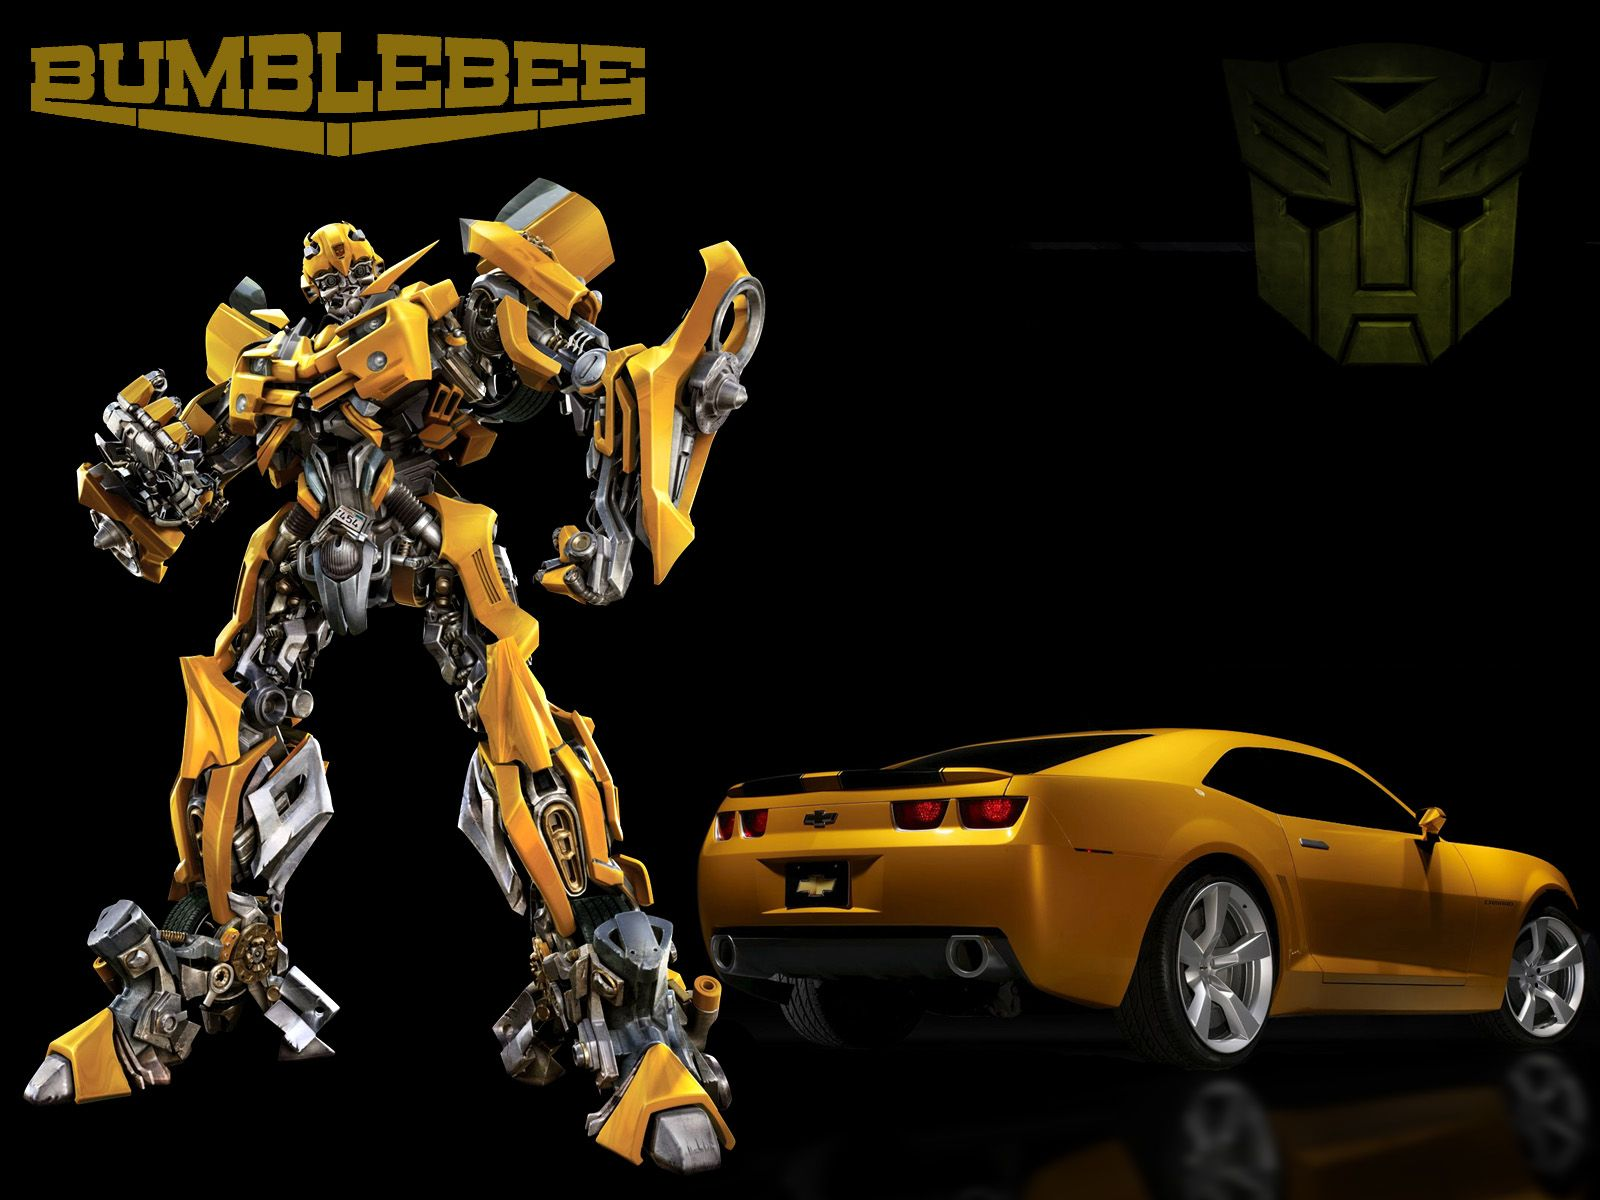 Bumble bee embroidery designs car pictures - Well All The Transformer Movies But Specially Love Bumble Bee And Optimus Prime They Are My Fav